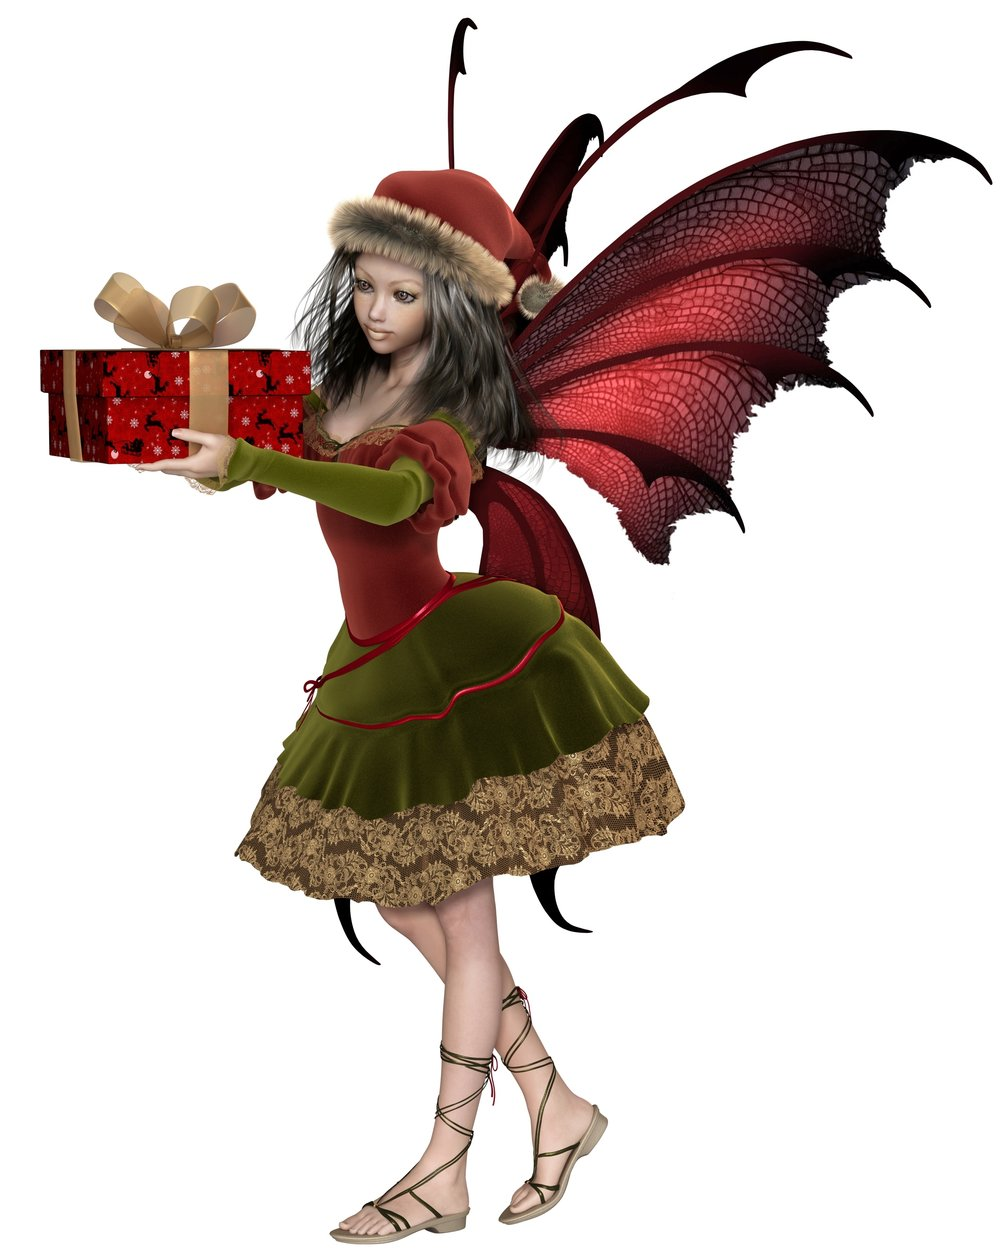 Christmas Fairy Elf Girl Holding a Gift - fantasy illustration